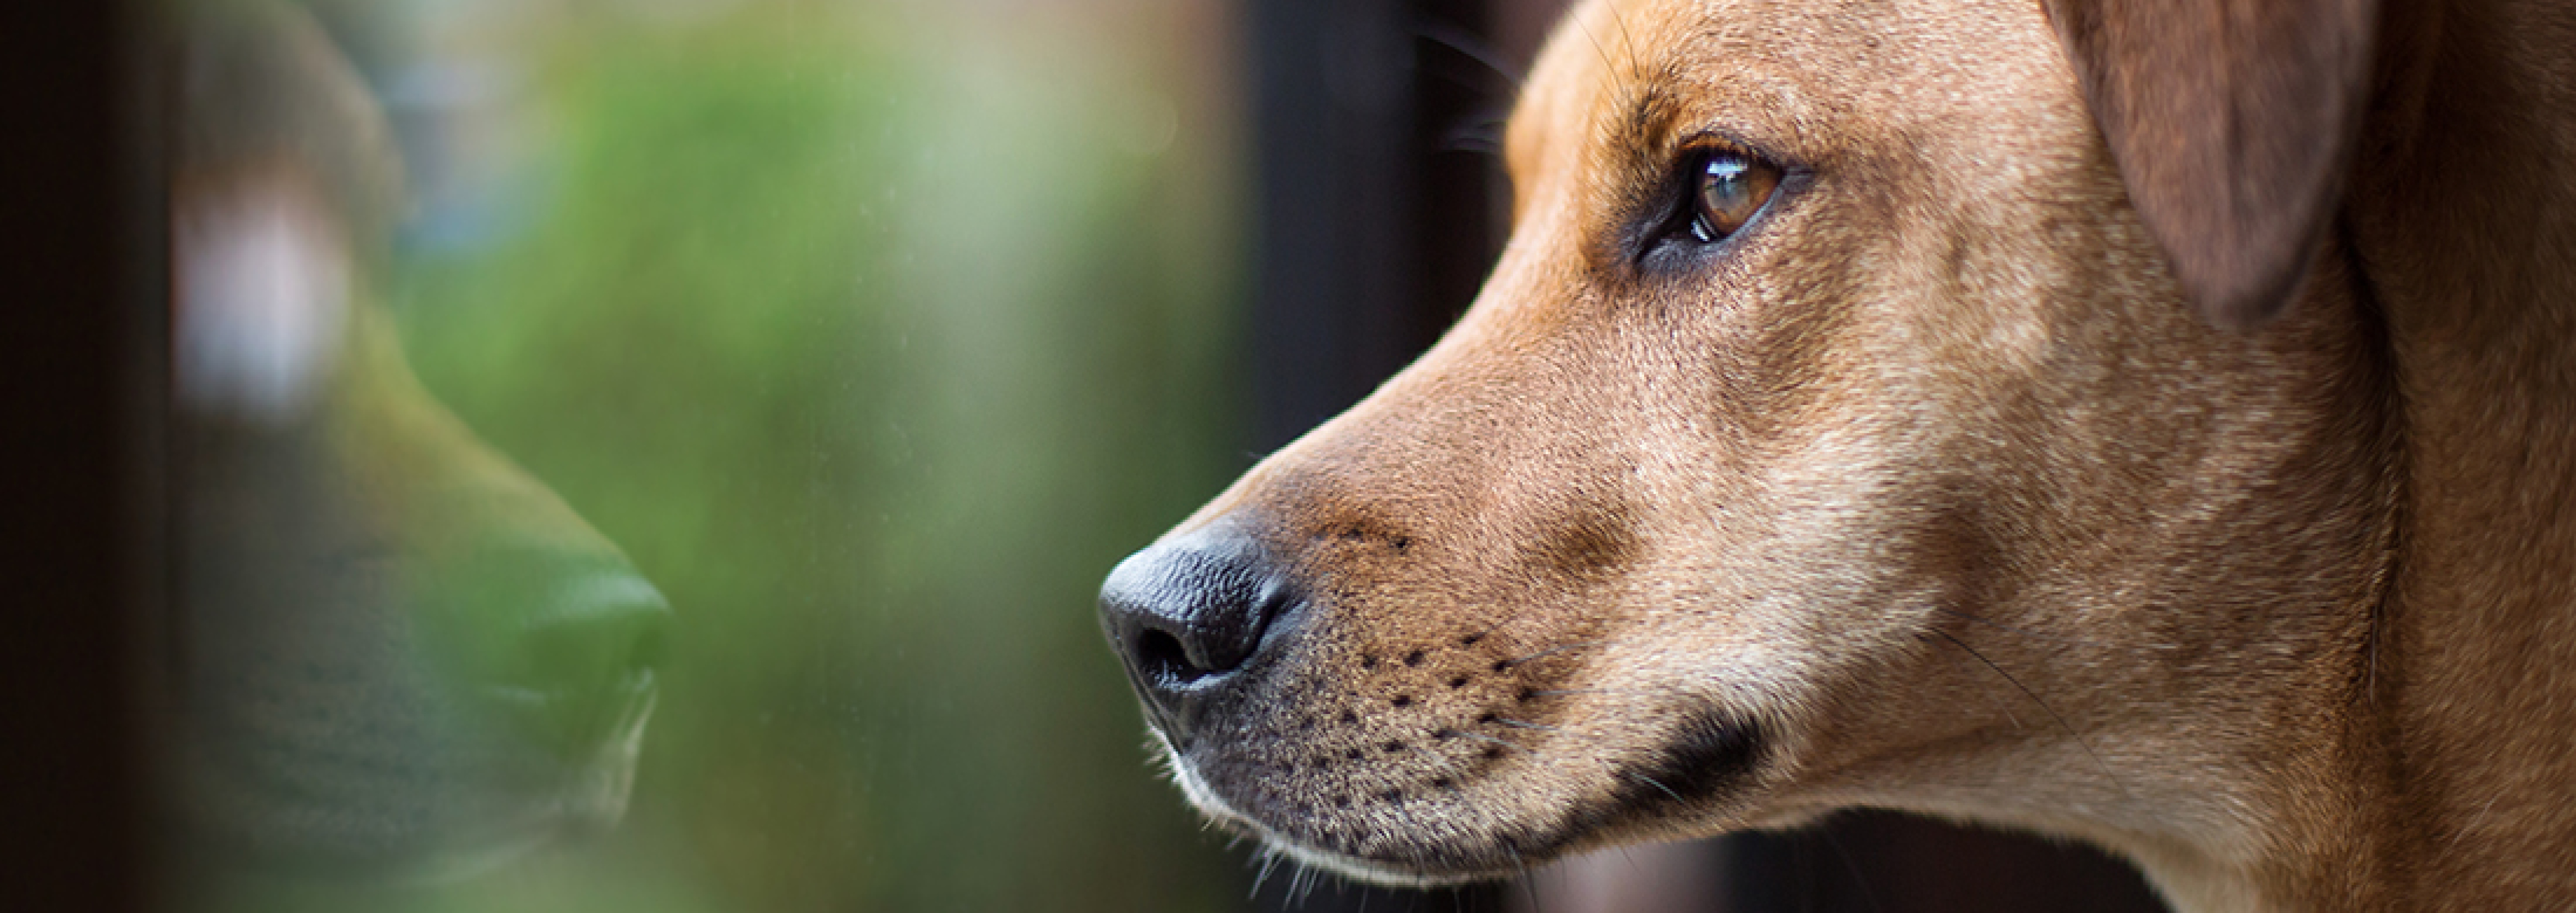 Dealing with Grief in Dogs | PEDIGREE®